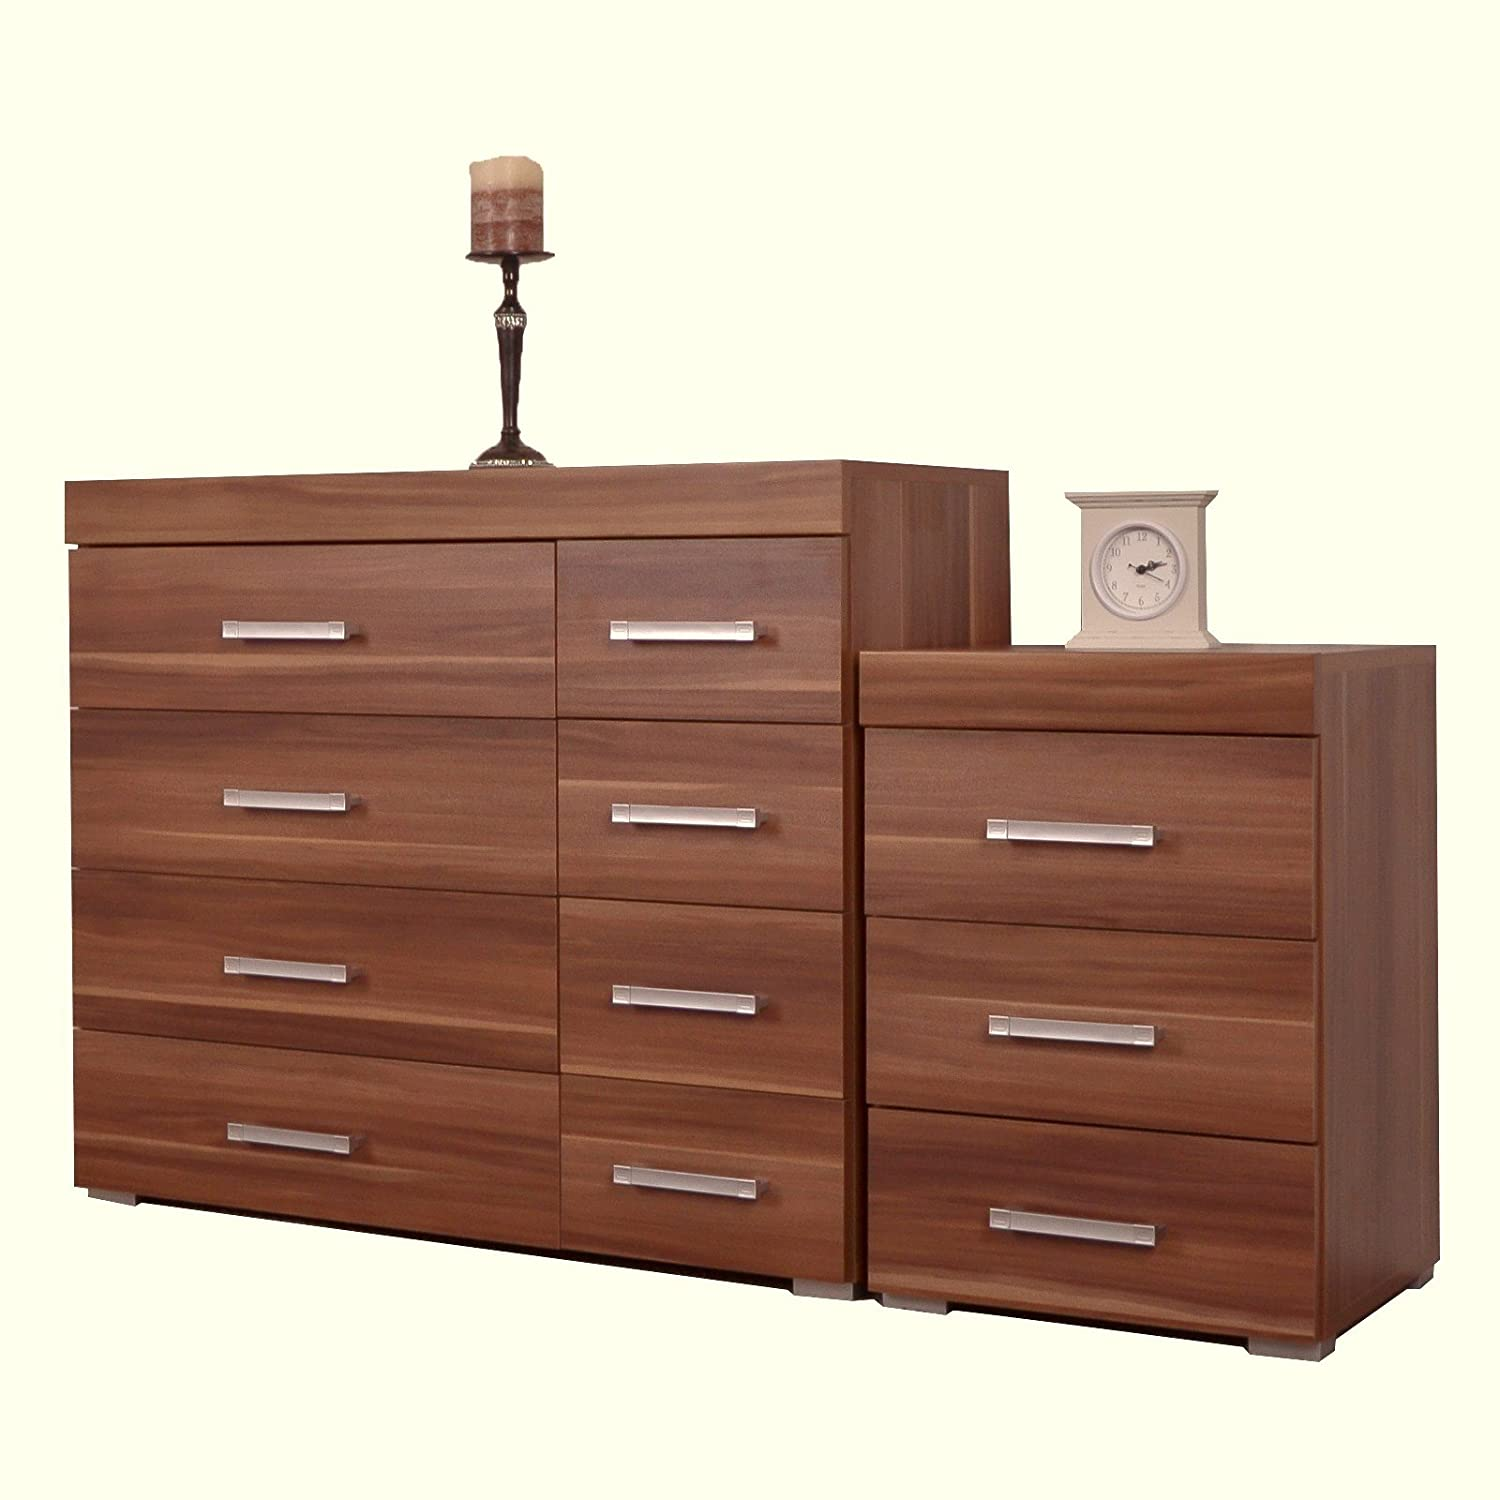 DP Walnut 4+4 Drawer Chest & 3 Draw Bedside Cabinet Bedroom Furniture NEW